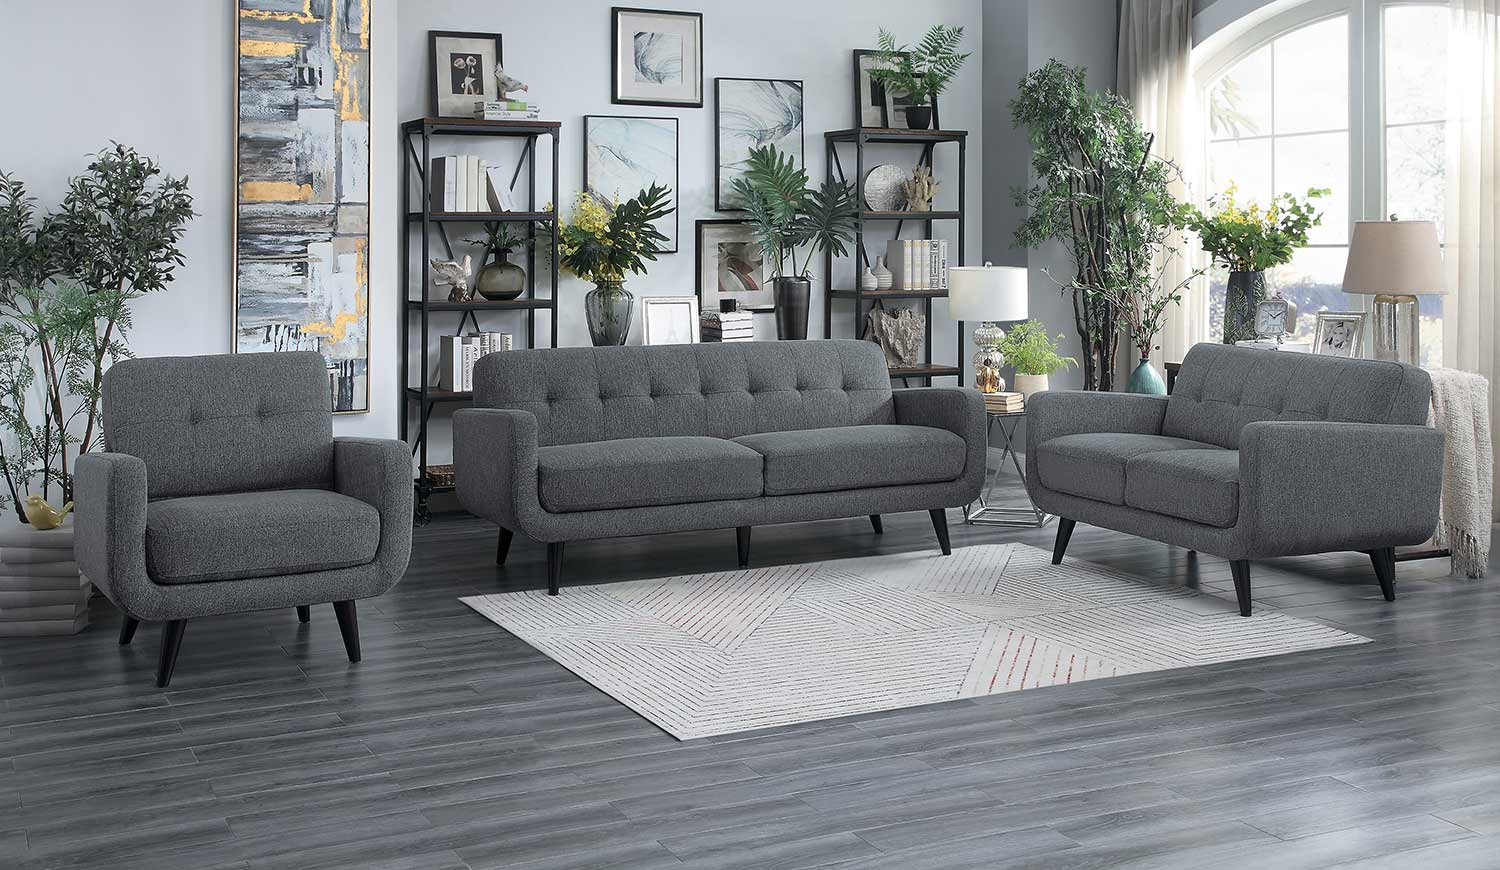 Homelegance Monroe Sofa Set - Gray